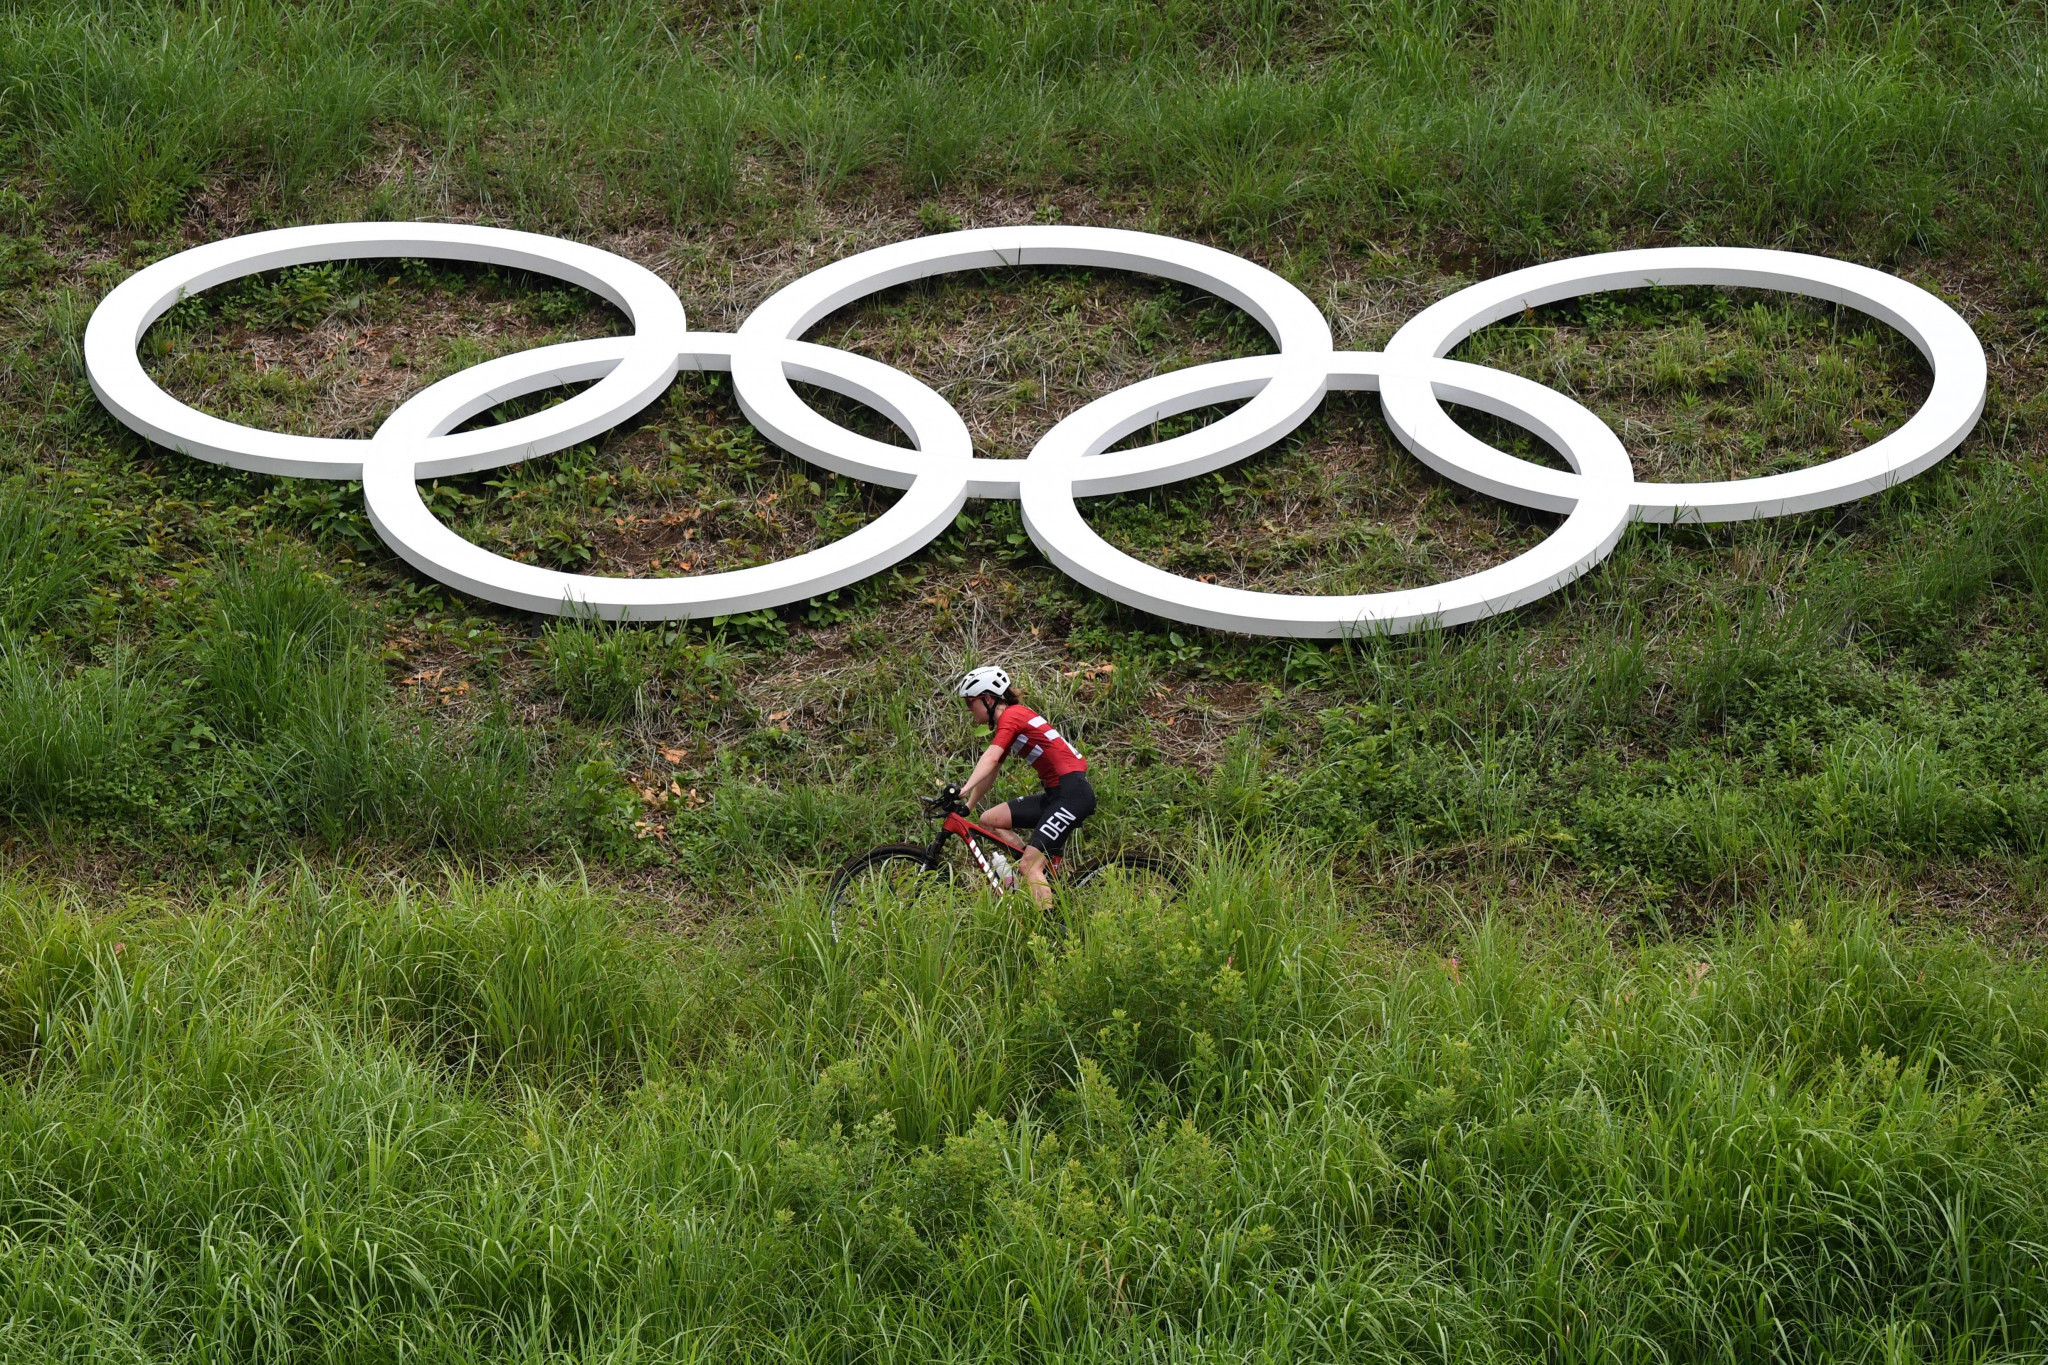 International Cycling Union reveals sizeable $5 million loan from the IOC